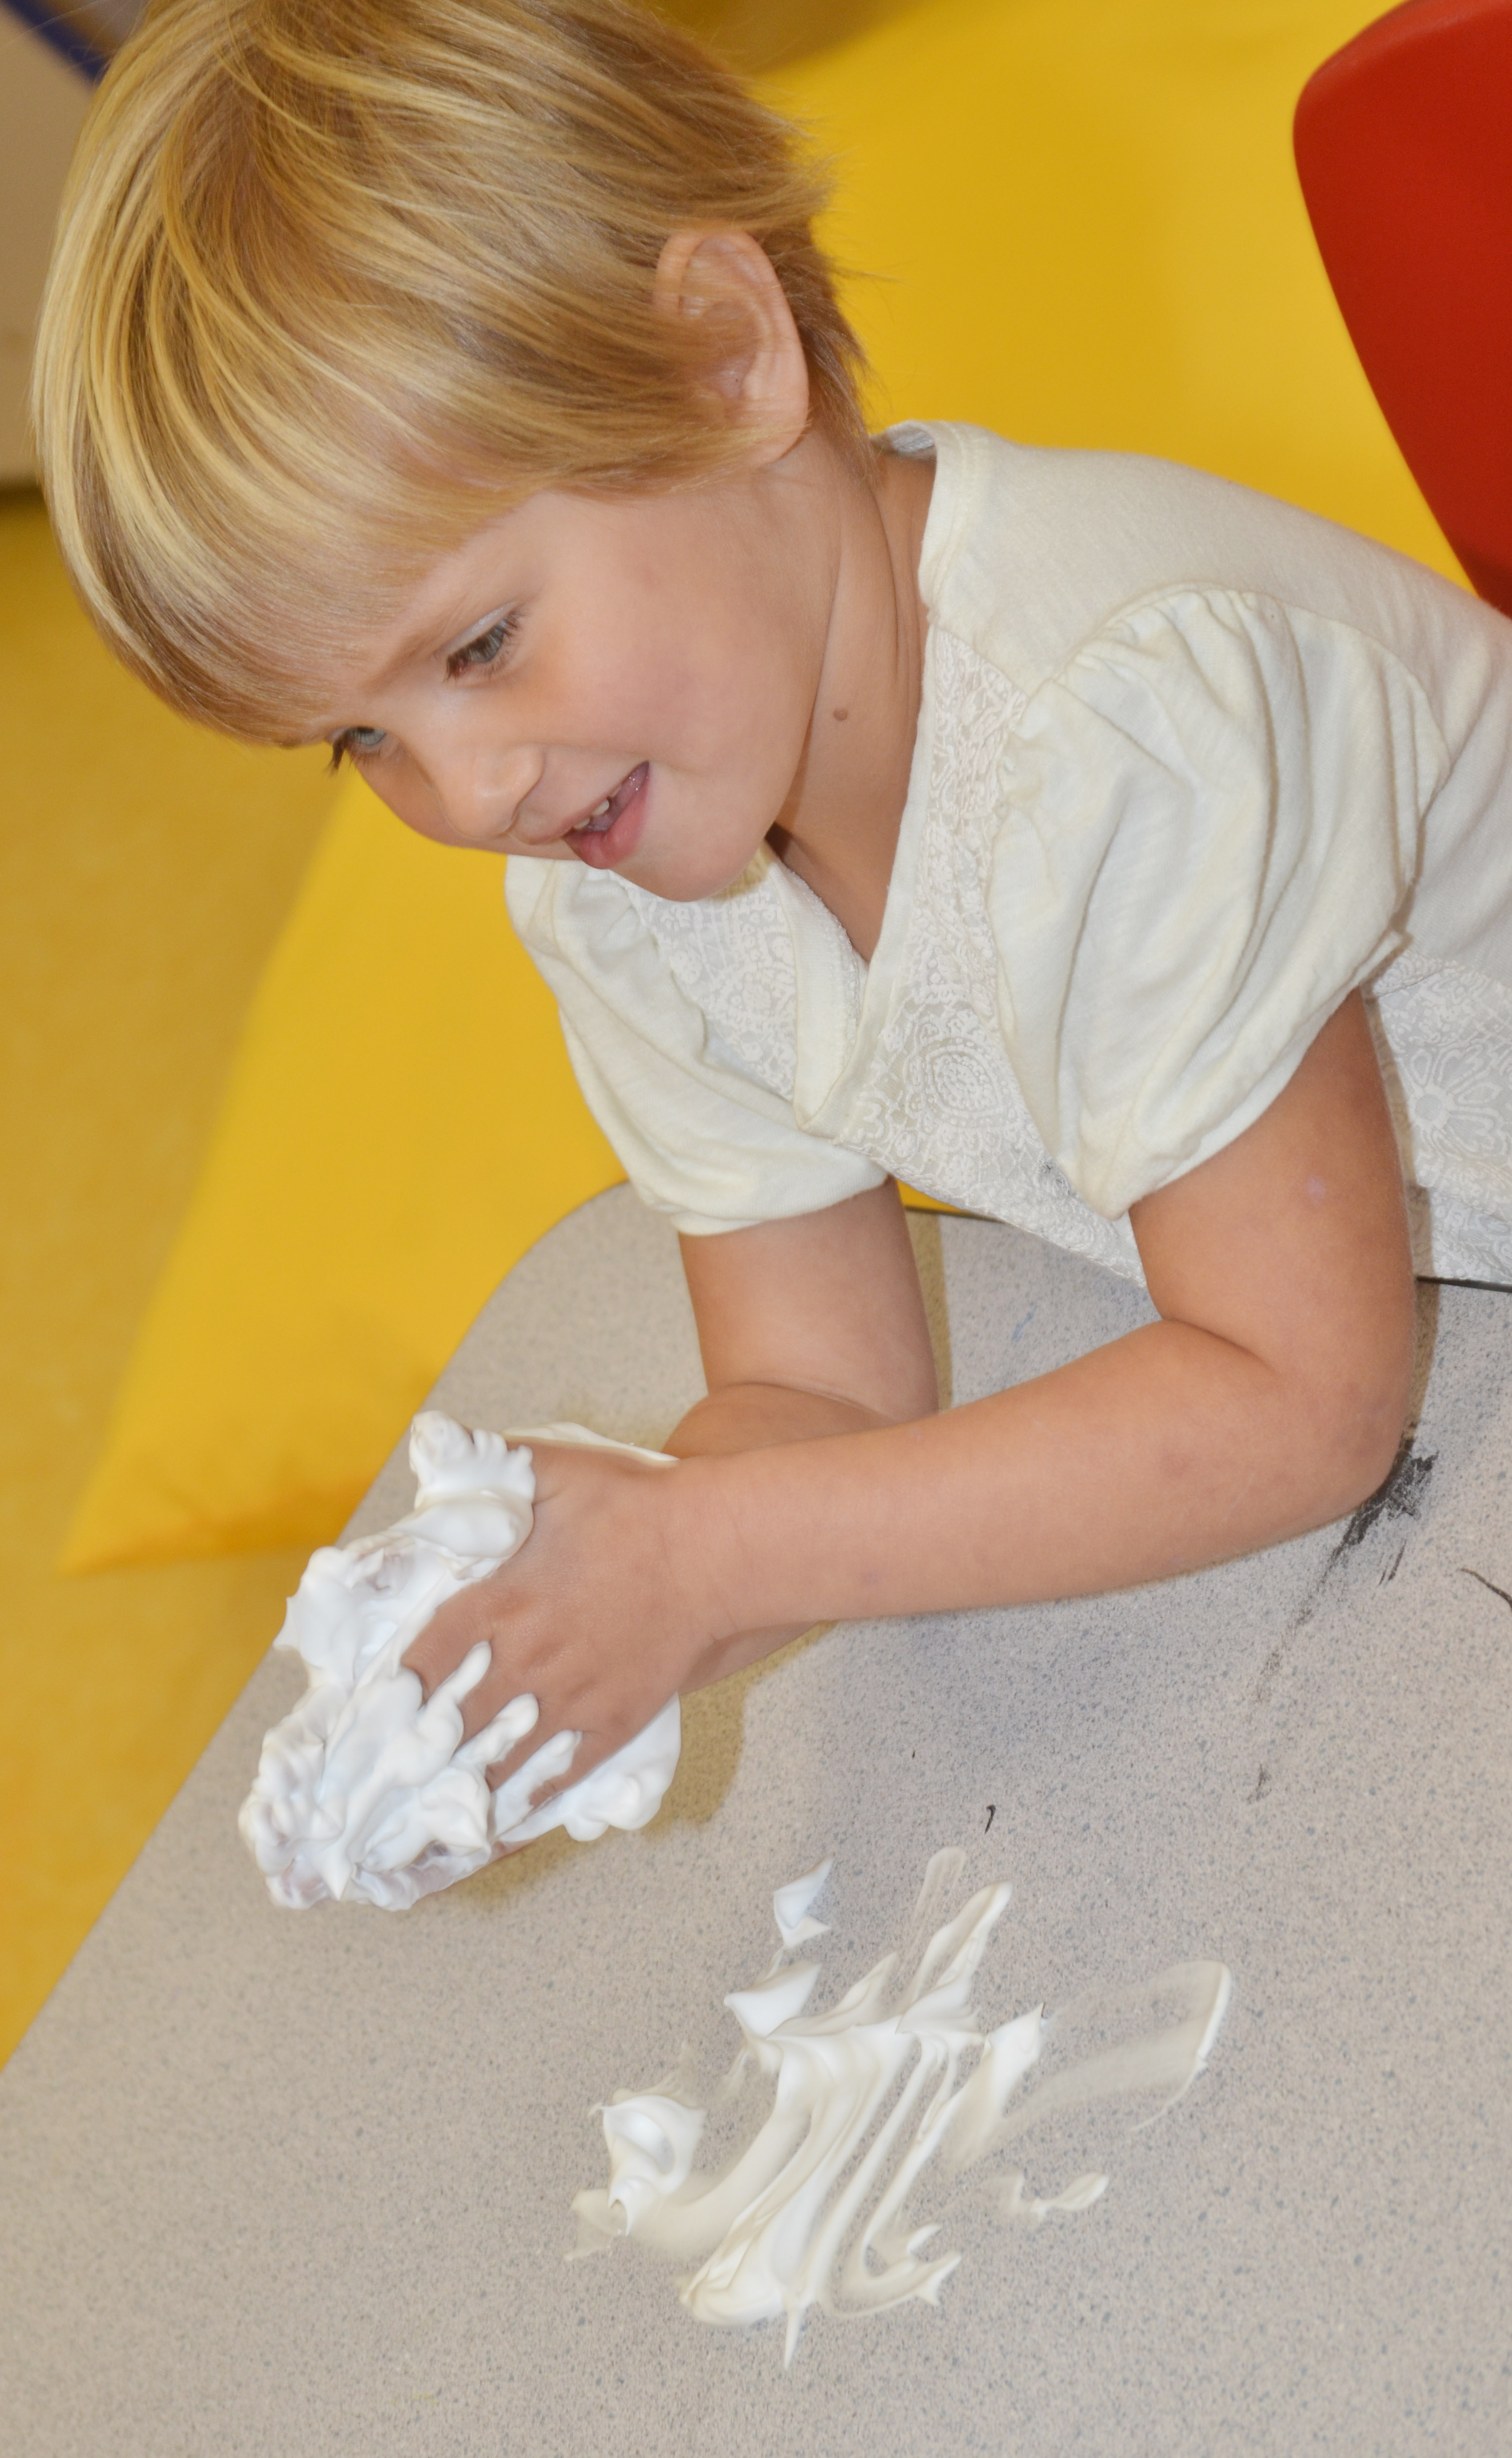 CES preschool student Elliana Morton feels shaving cream in her hands.